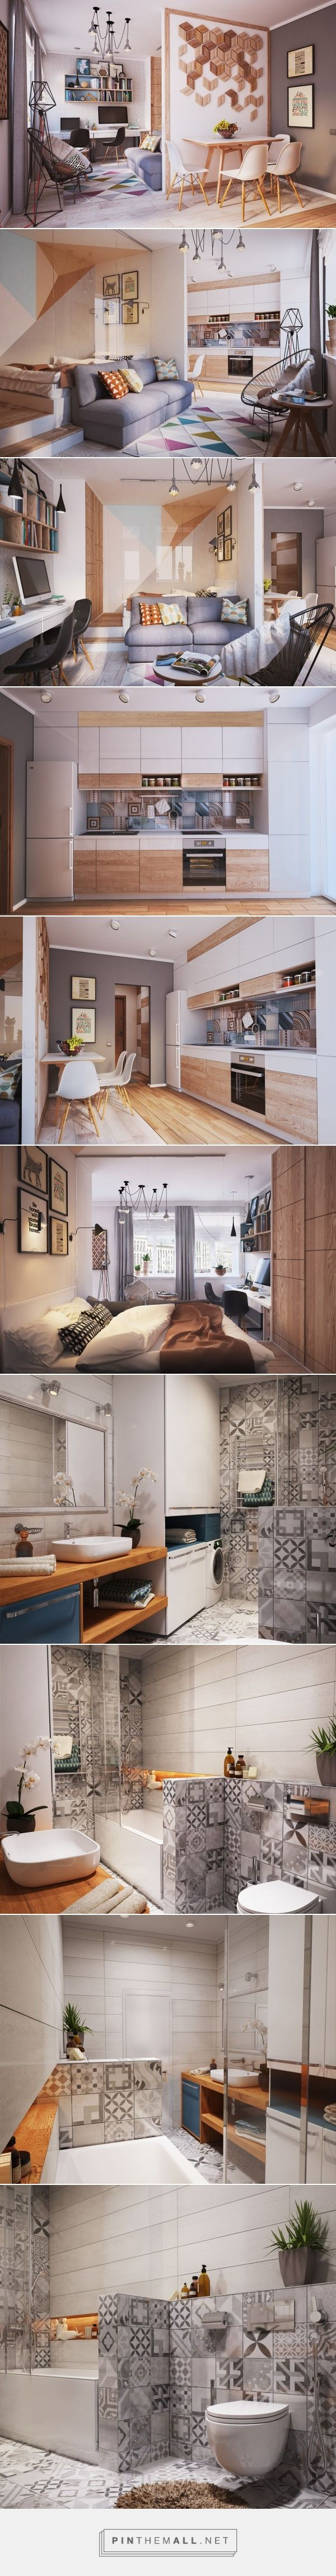 Living Small With Style  2 Beautiful Small Apartment Plans Under 500 Square  Feet  50. Living Small With Style  2 Beautiful Small Apartment Plans Under